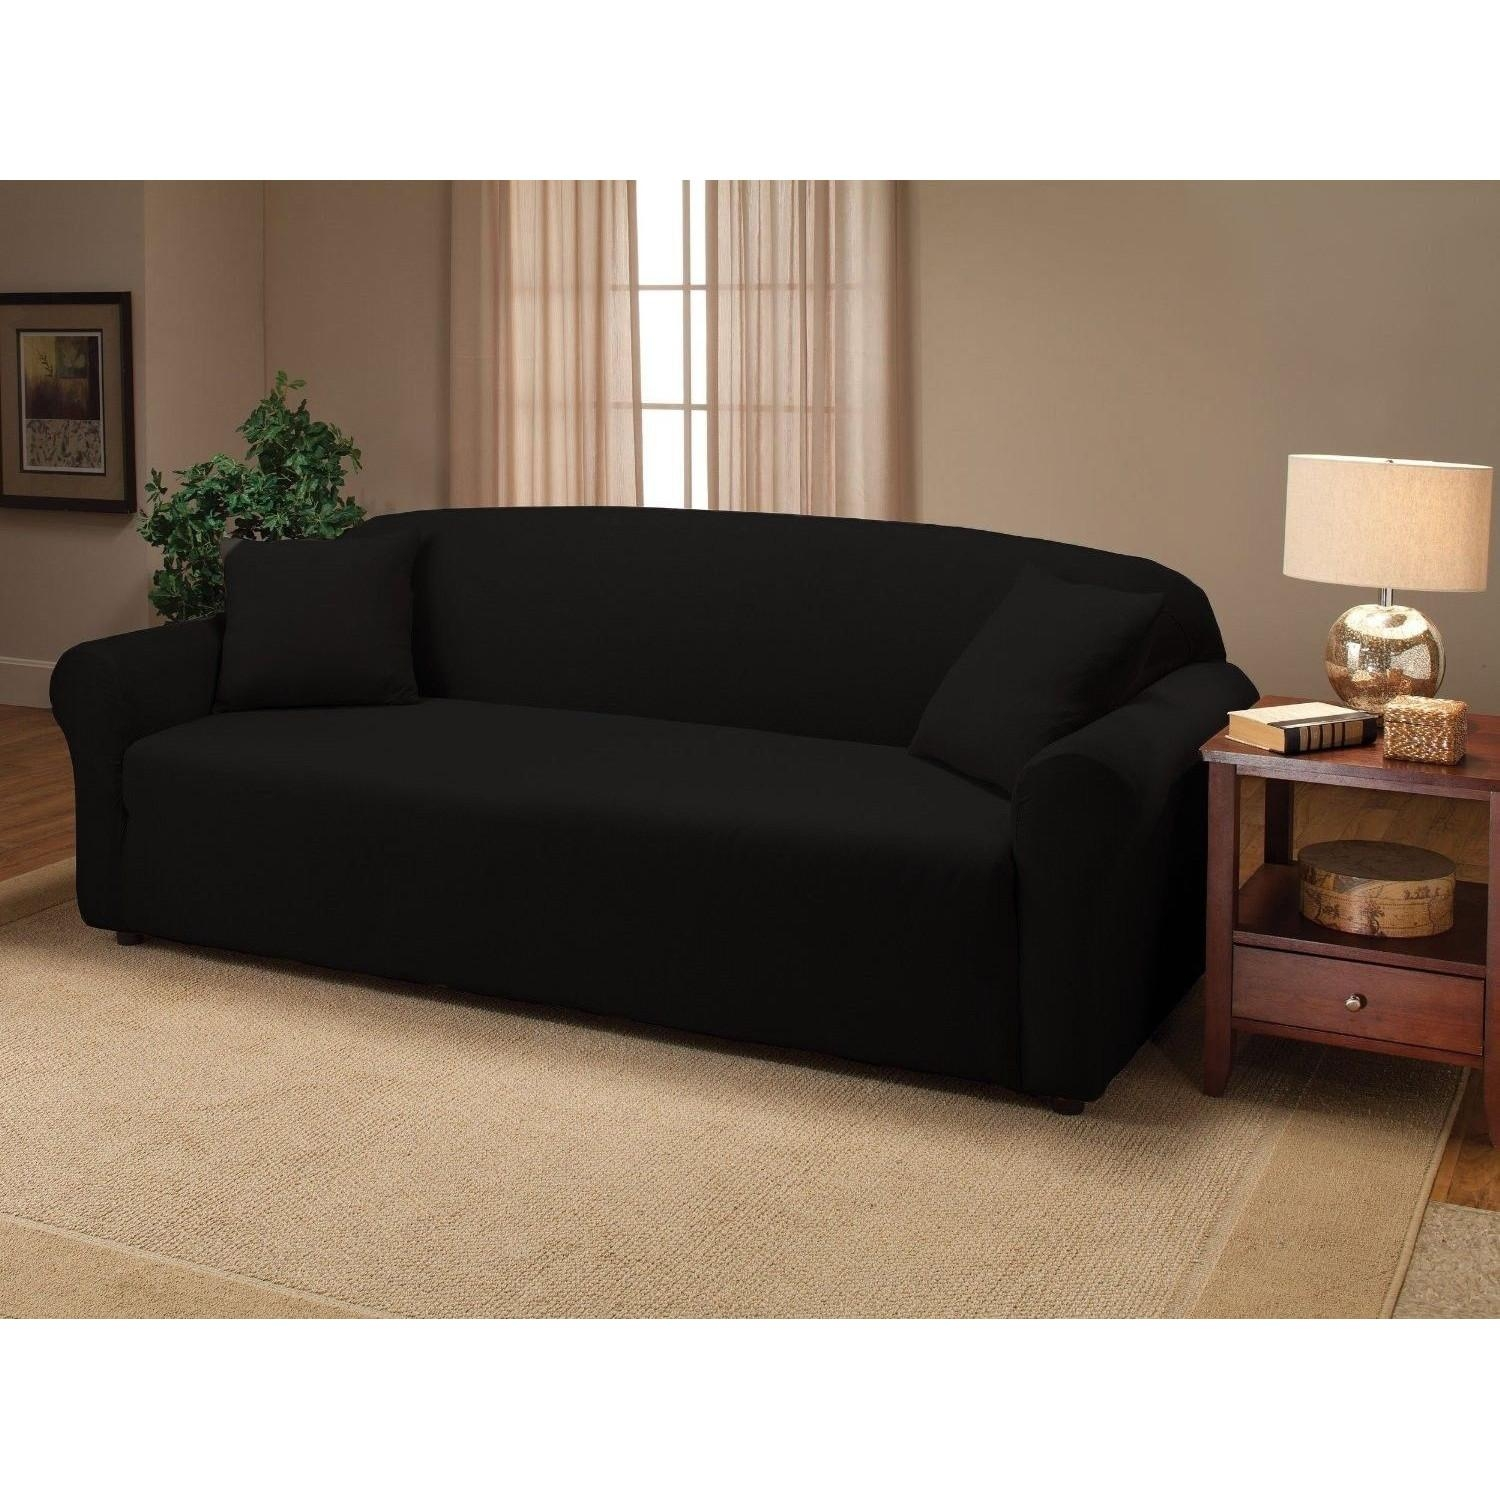 slipcover for sofa cushions separate cheap sofas and couches 20 photos black slipcovers ideas